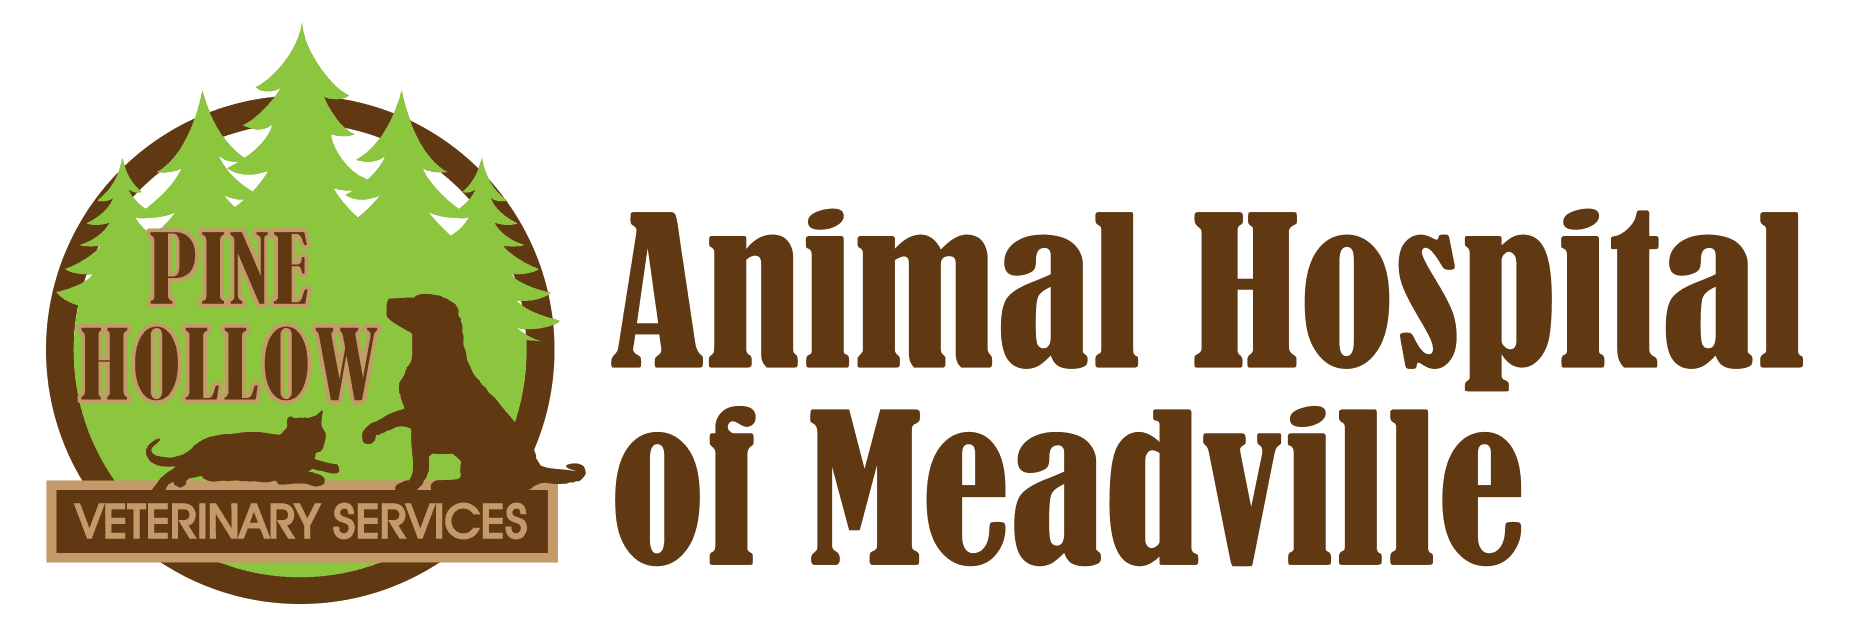 Animal Hospital of Meadville: Where Our Passion is Paved with Paw Prints